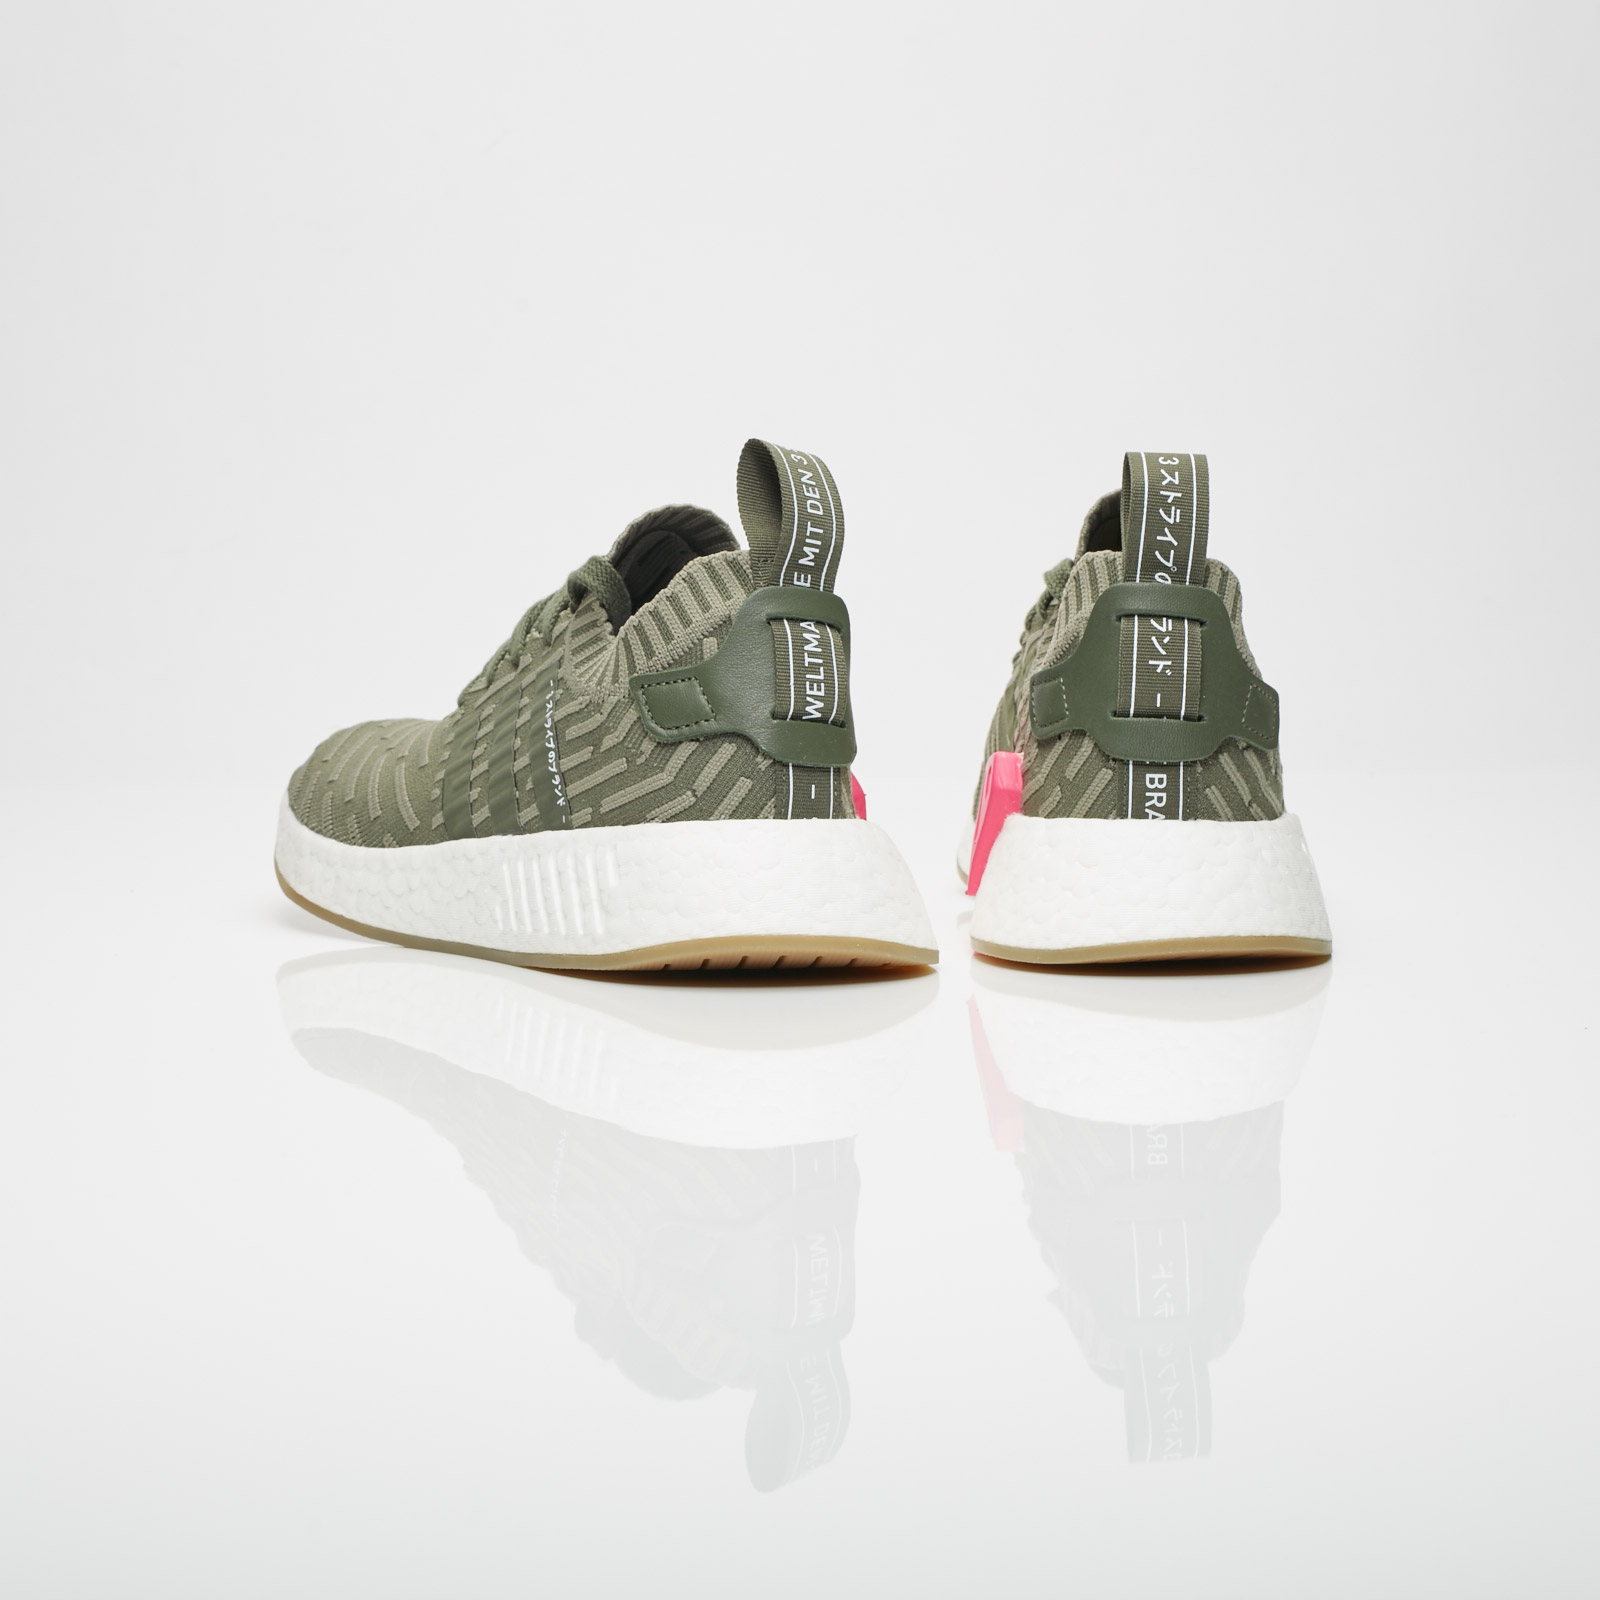 buy popular 6fbe6 577d6 adidas NMD R2 PK W - By9953 - Sneakersnstuff | sneakers ...